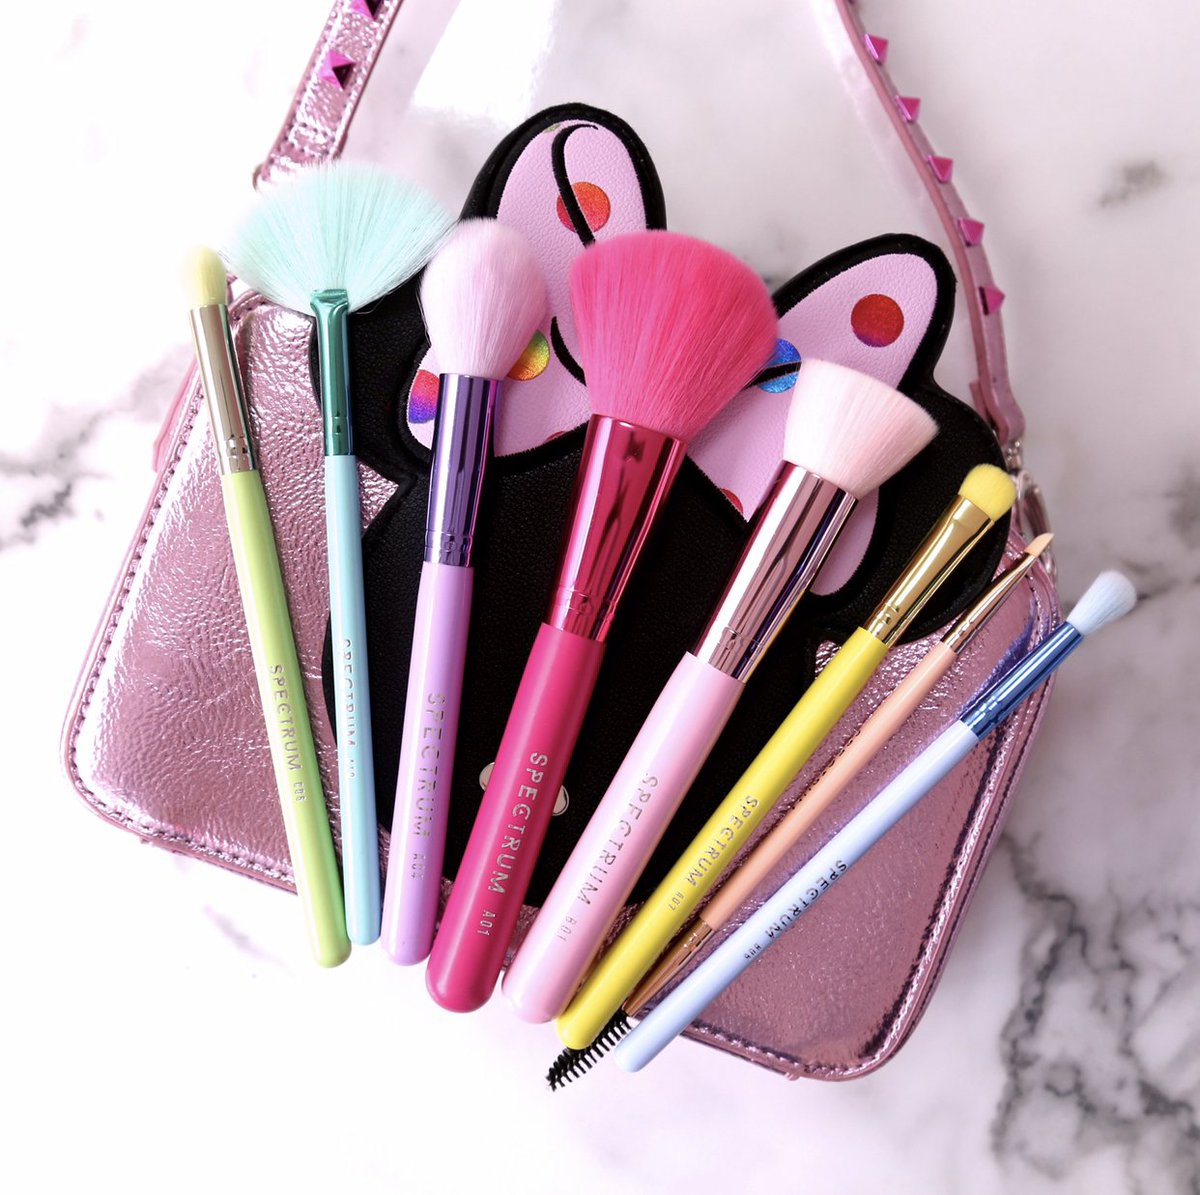 When you thought your #spectrumbrushes couldn't get any prettier  Minnie Mouse serving you 8 Rainbow #makeupbrushes to bring you pastel perfection   https:// bit.ly/2FiFZiV  &nbsp;   #disney #minniemouse #veganbeauty #crueltyfree<br>http://pic.twitter.com/uUZlLl9oF3